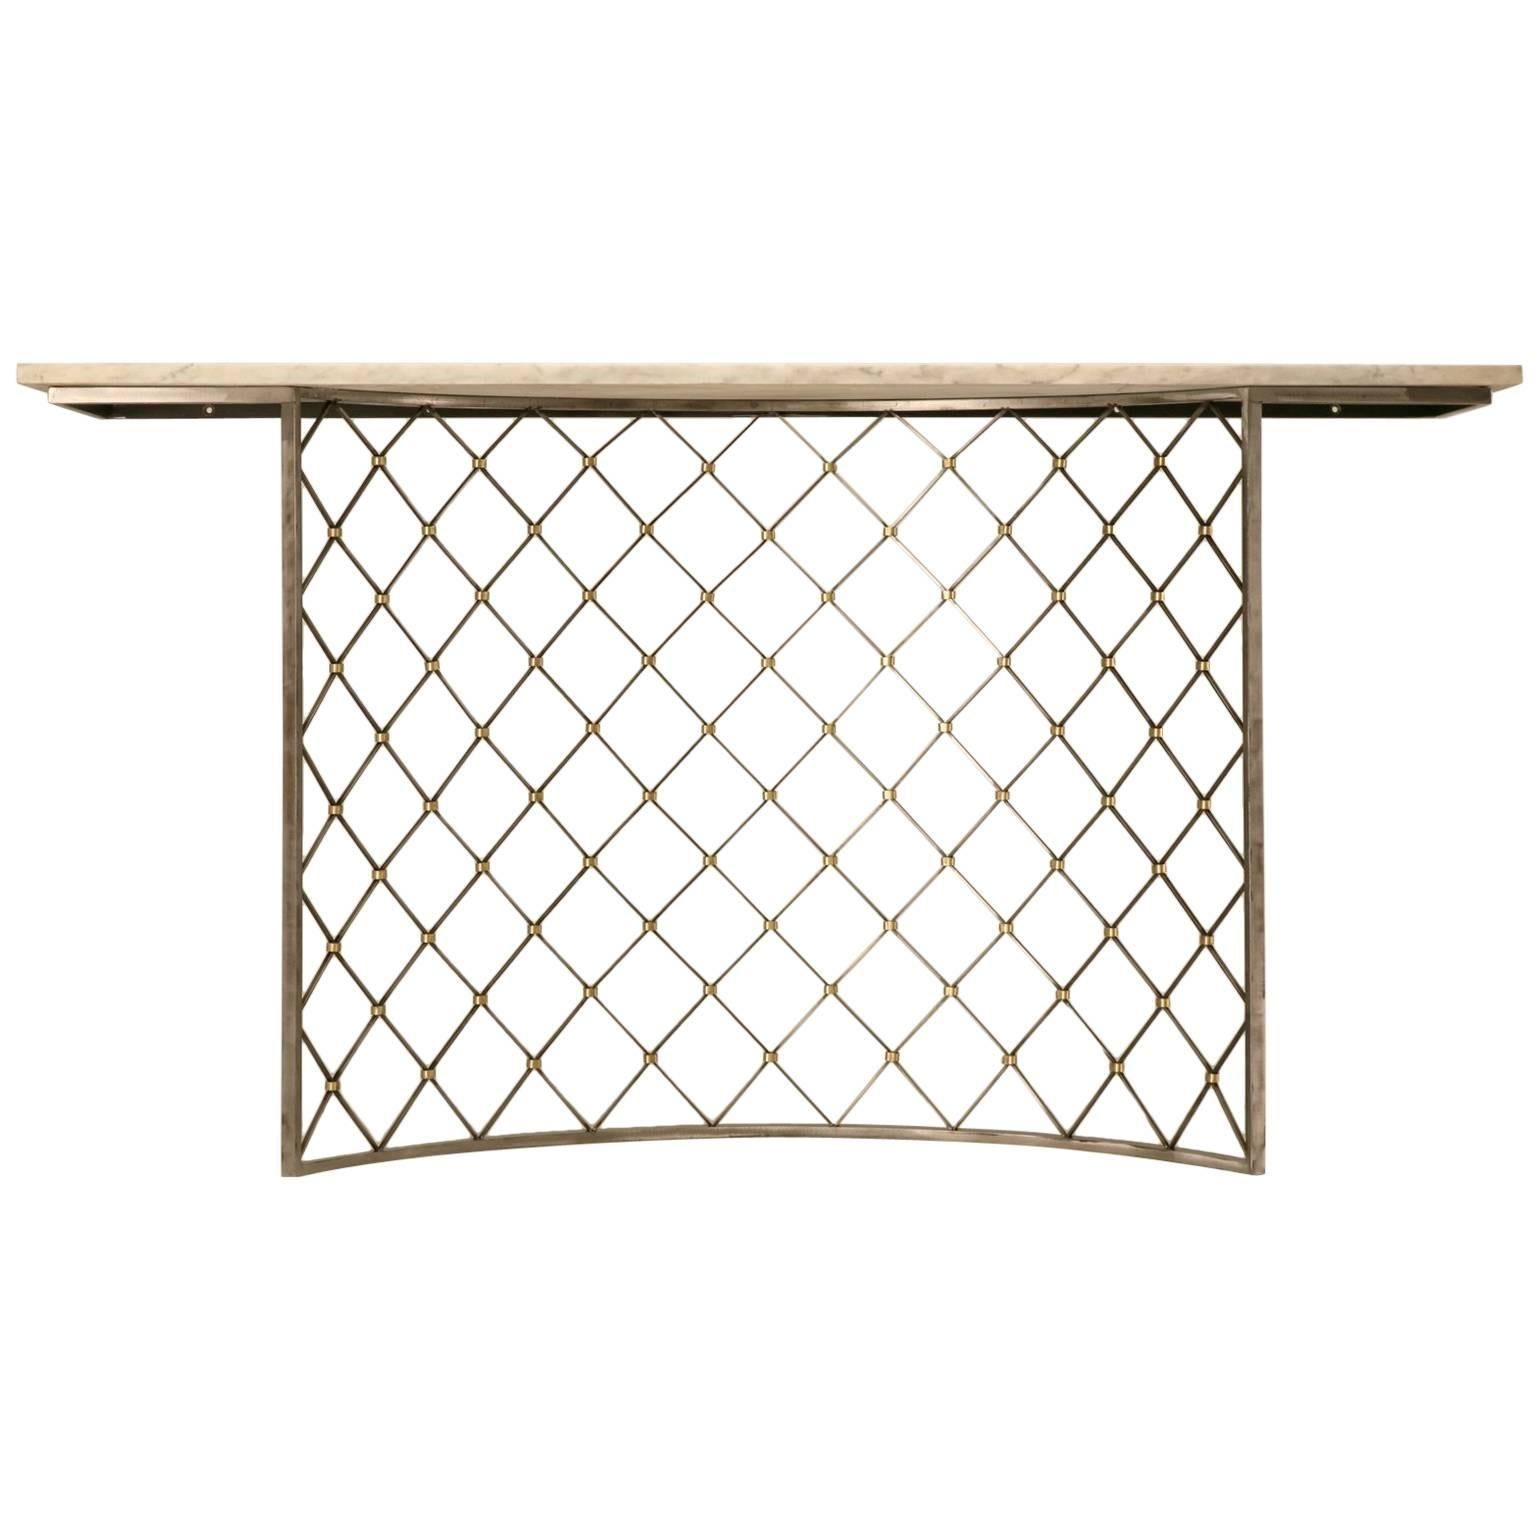 Steel Console Table Base with Brass Details from the Old Plank Collection